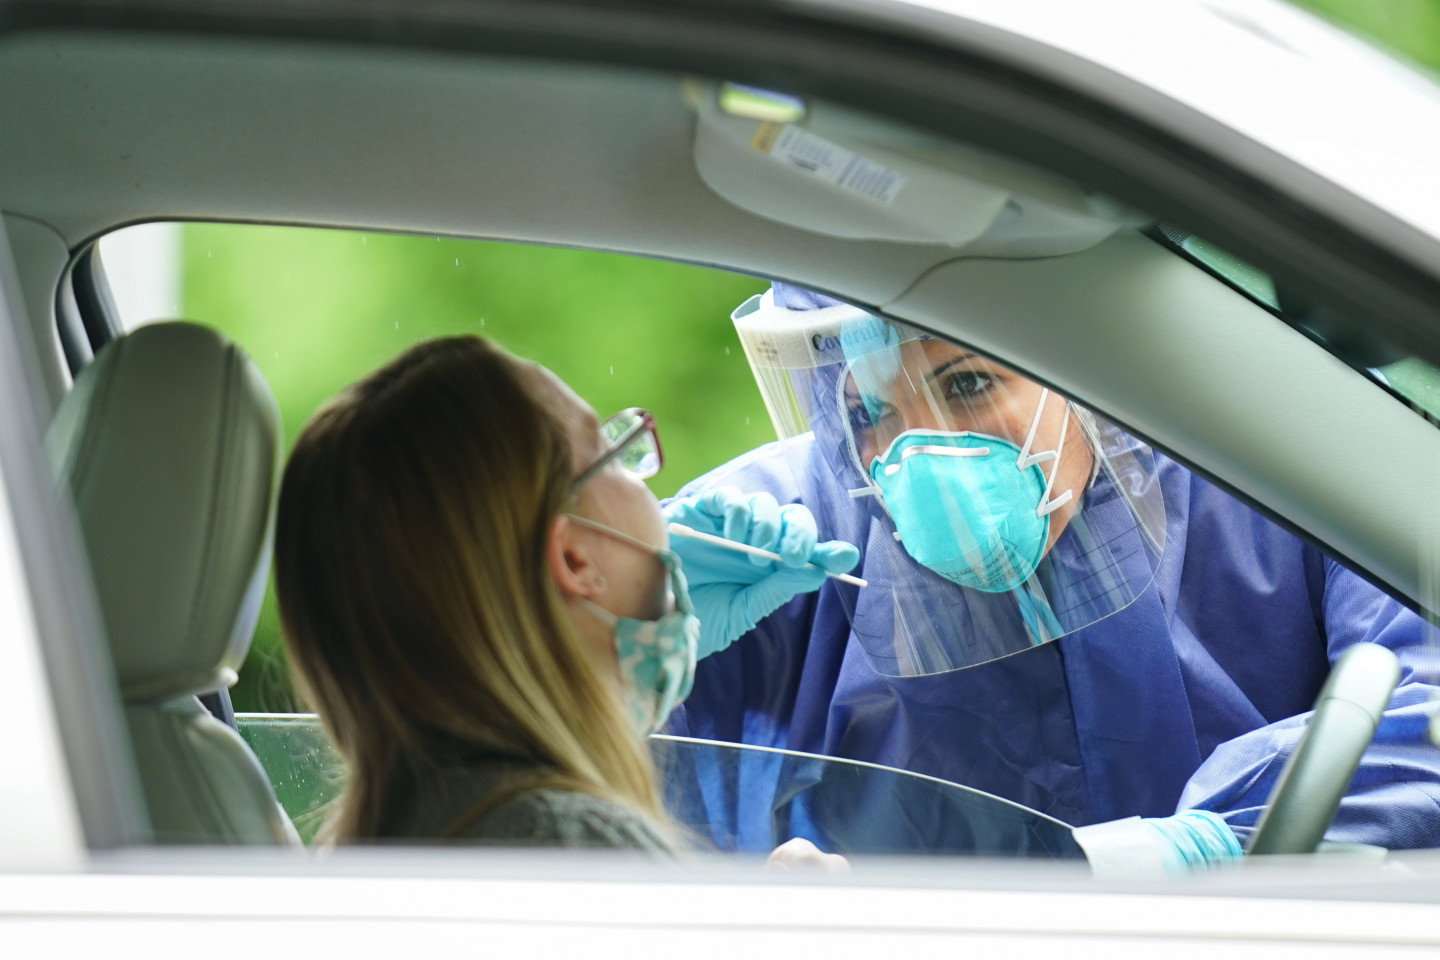 A medical professional administers a COVID-19 test to a driver through her car window.